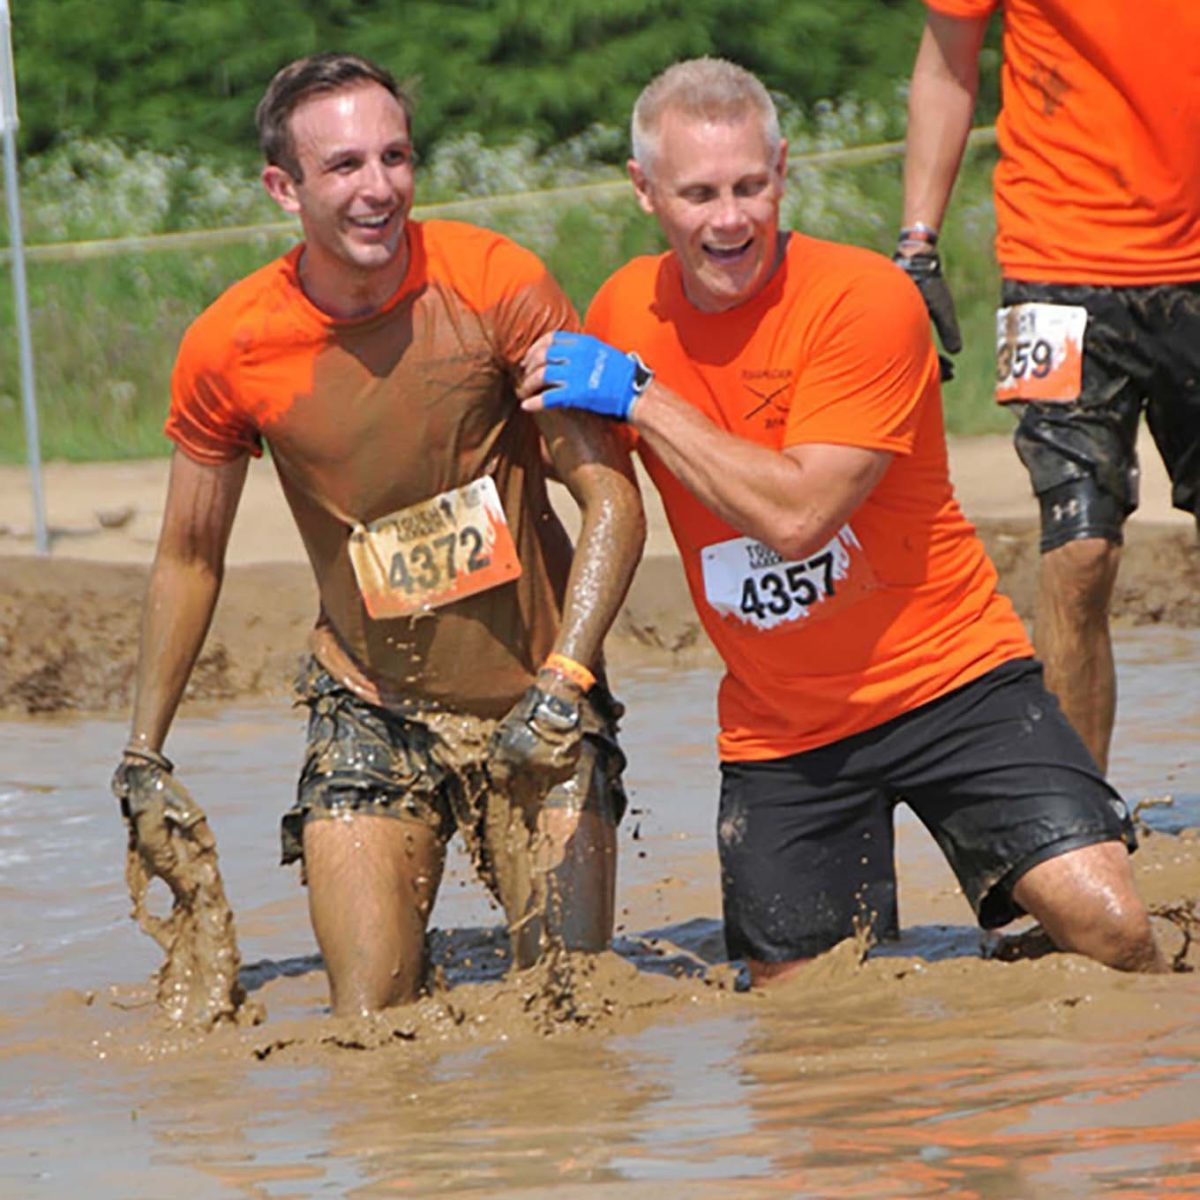 Tough Mudder with brother Justin and friend Paul